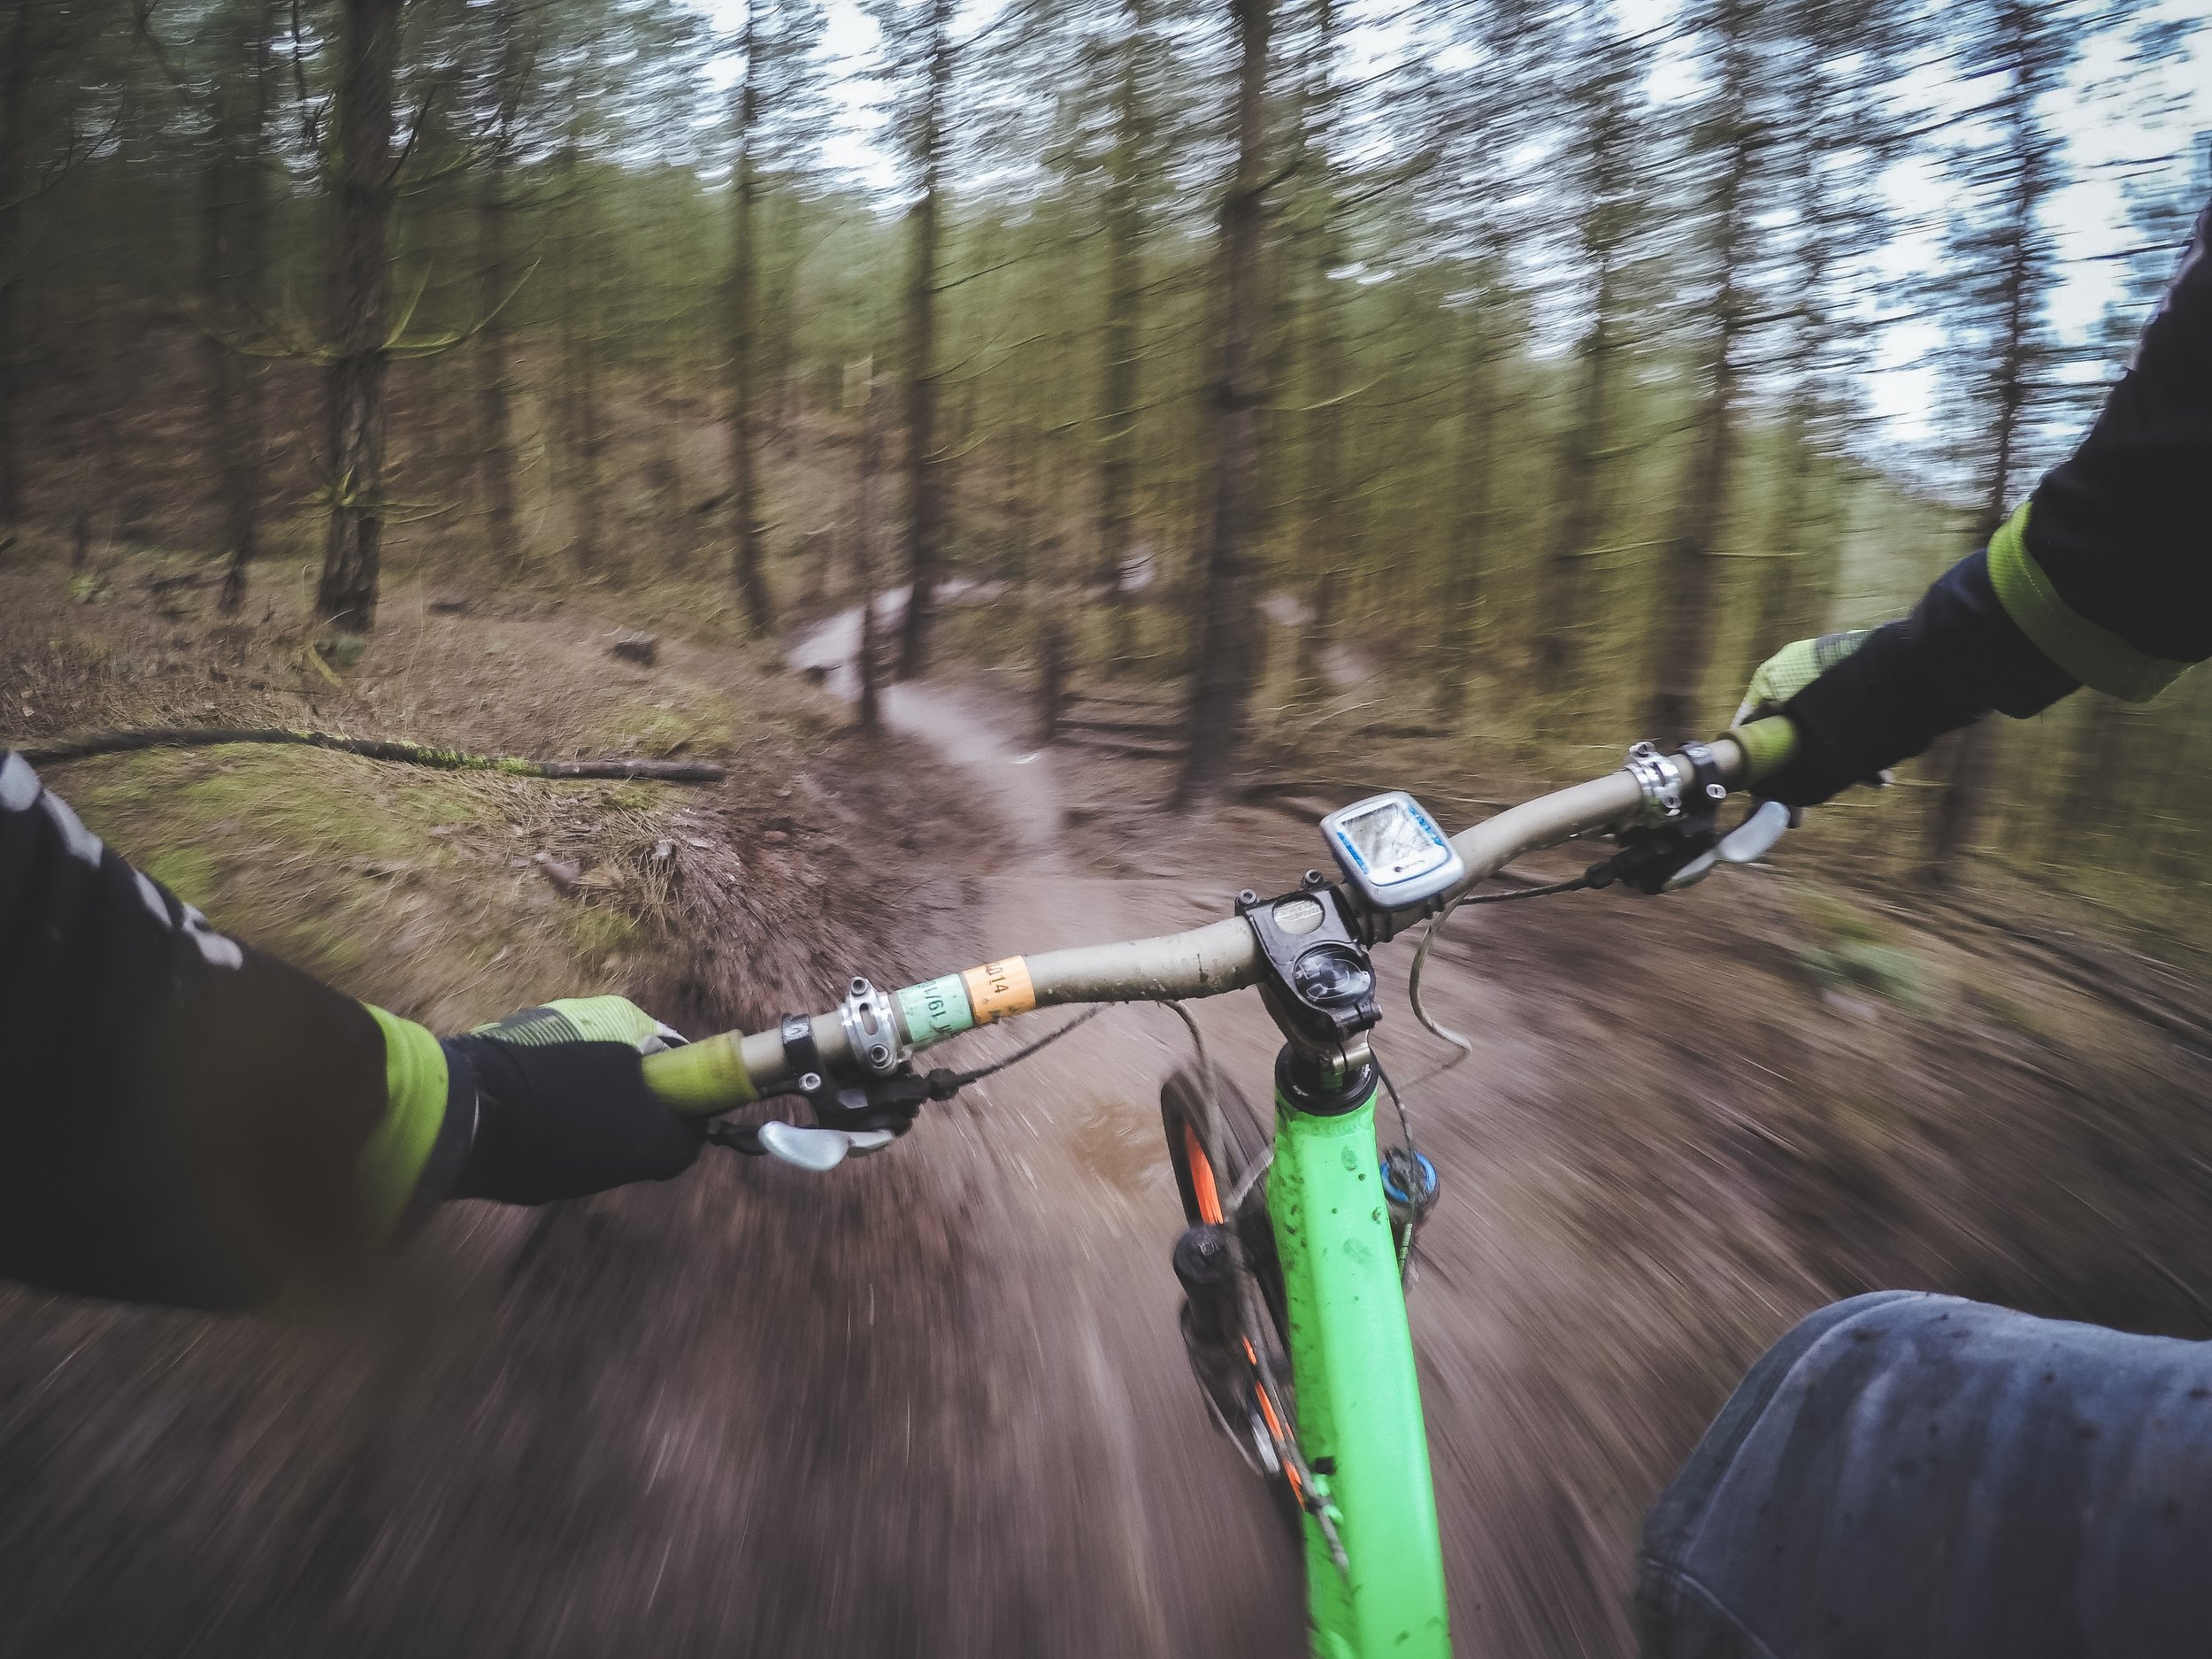 Photo of a dude on a bike ripping down a trail.